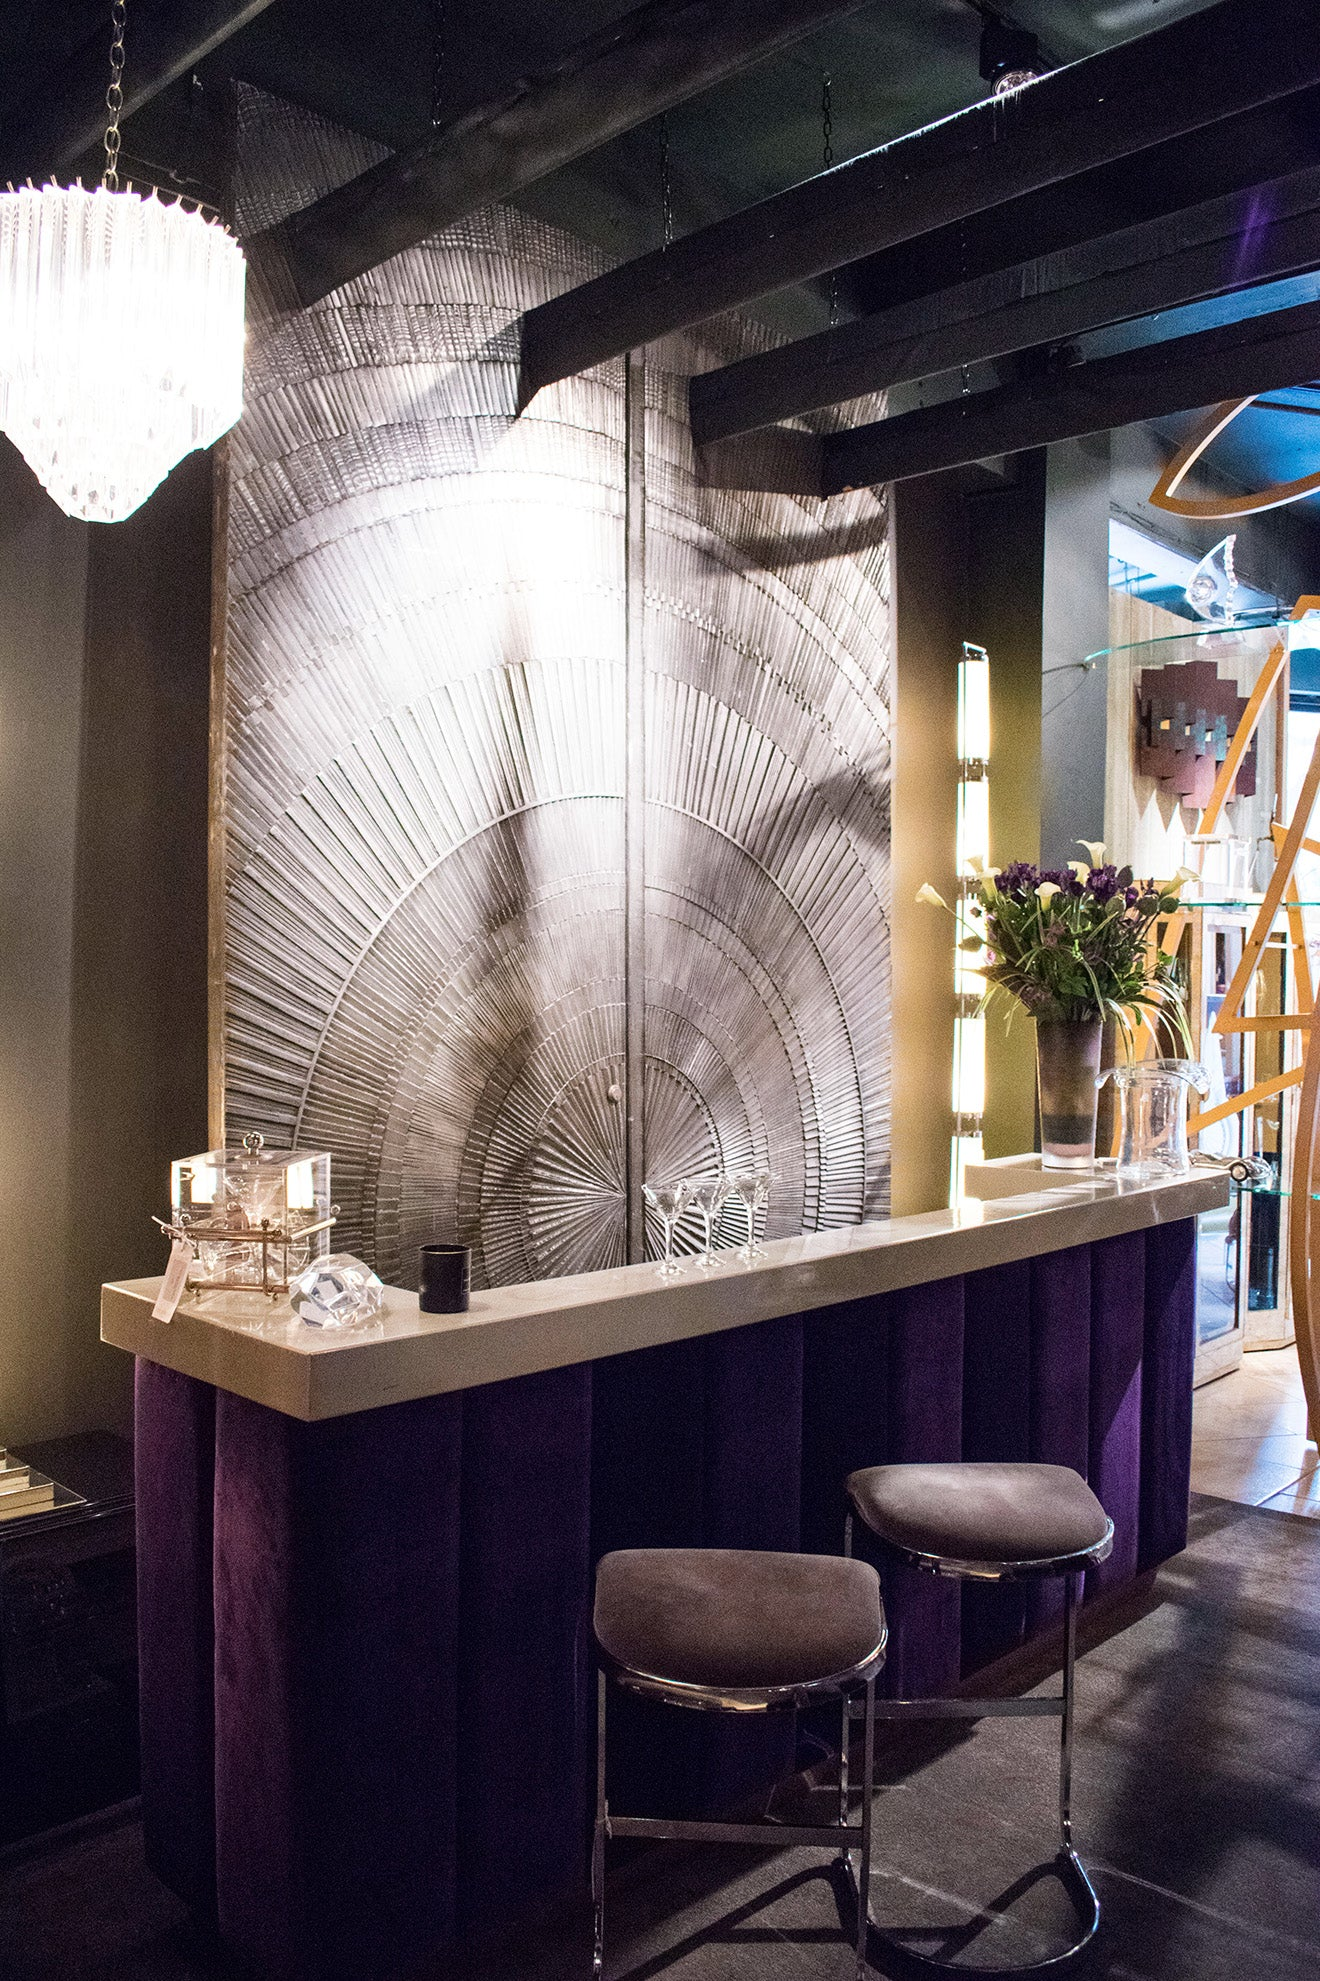 Martyn White Designs Deco inspired bar Designed at Talisman